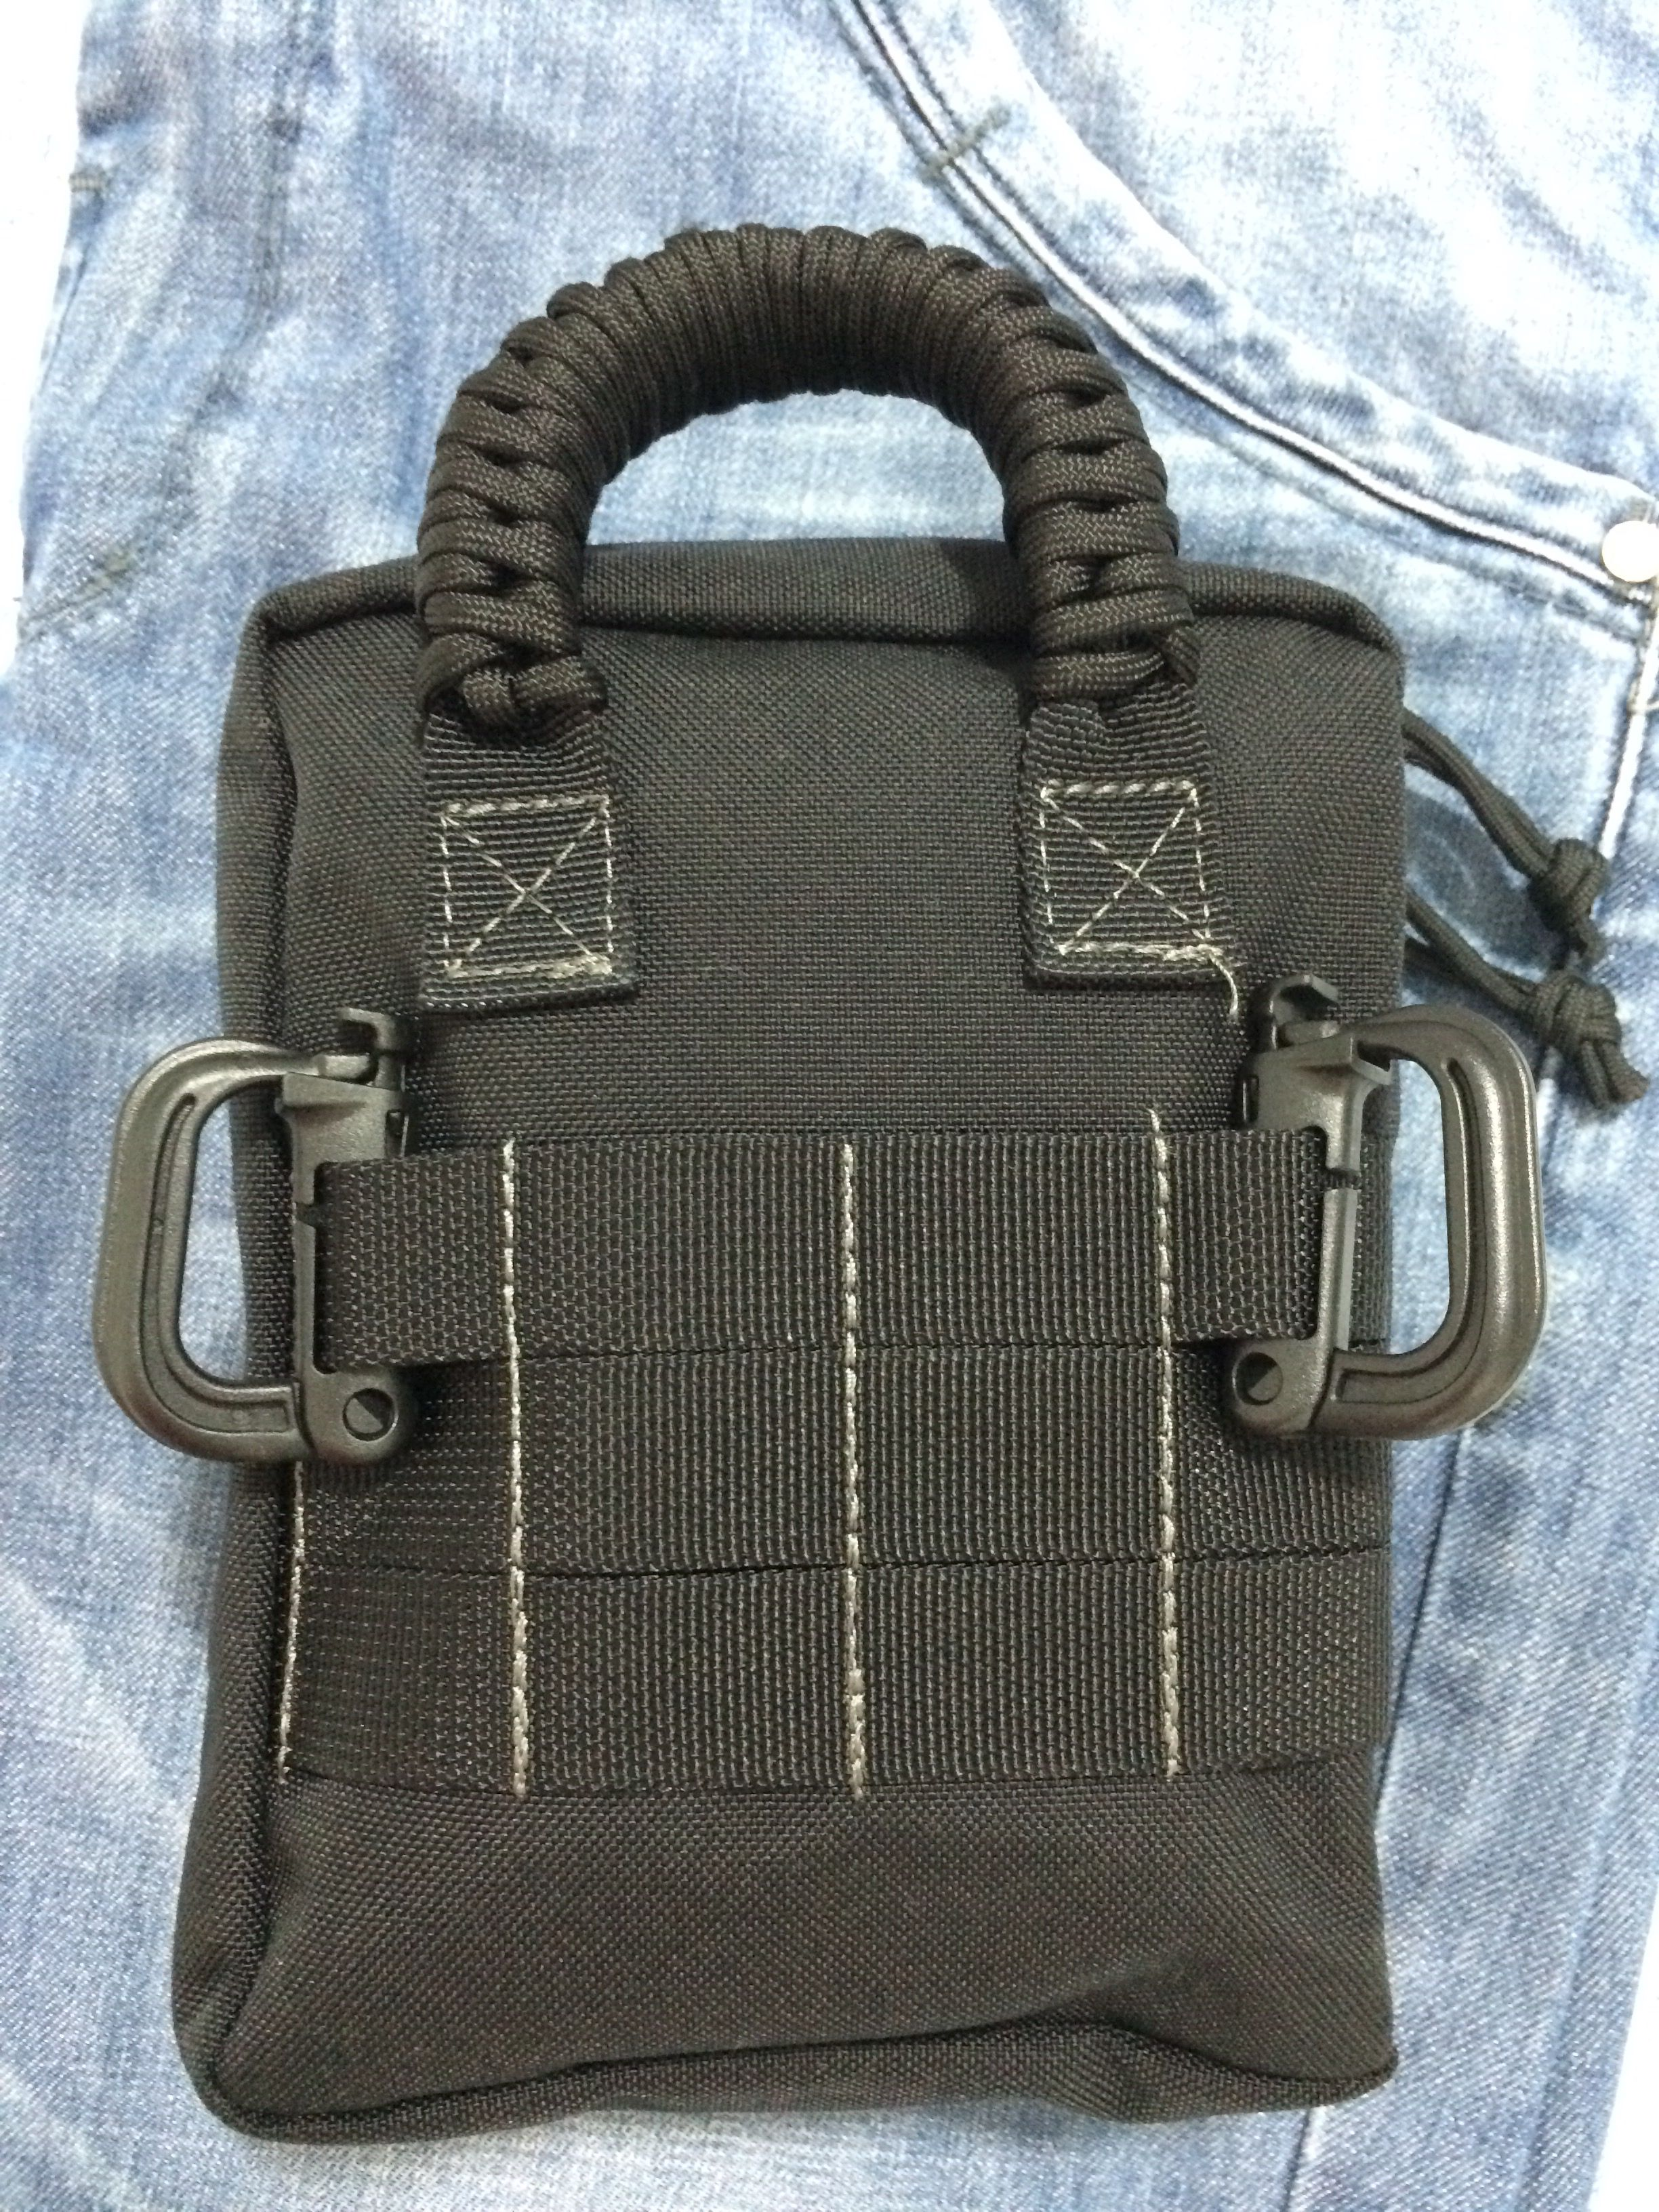 Carabiners And Paracord Strap In Maxpedition Beefy Functional Customization Everyday Carry Bag Edc